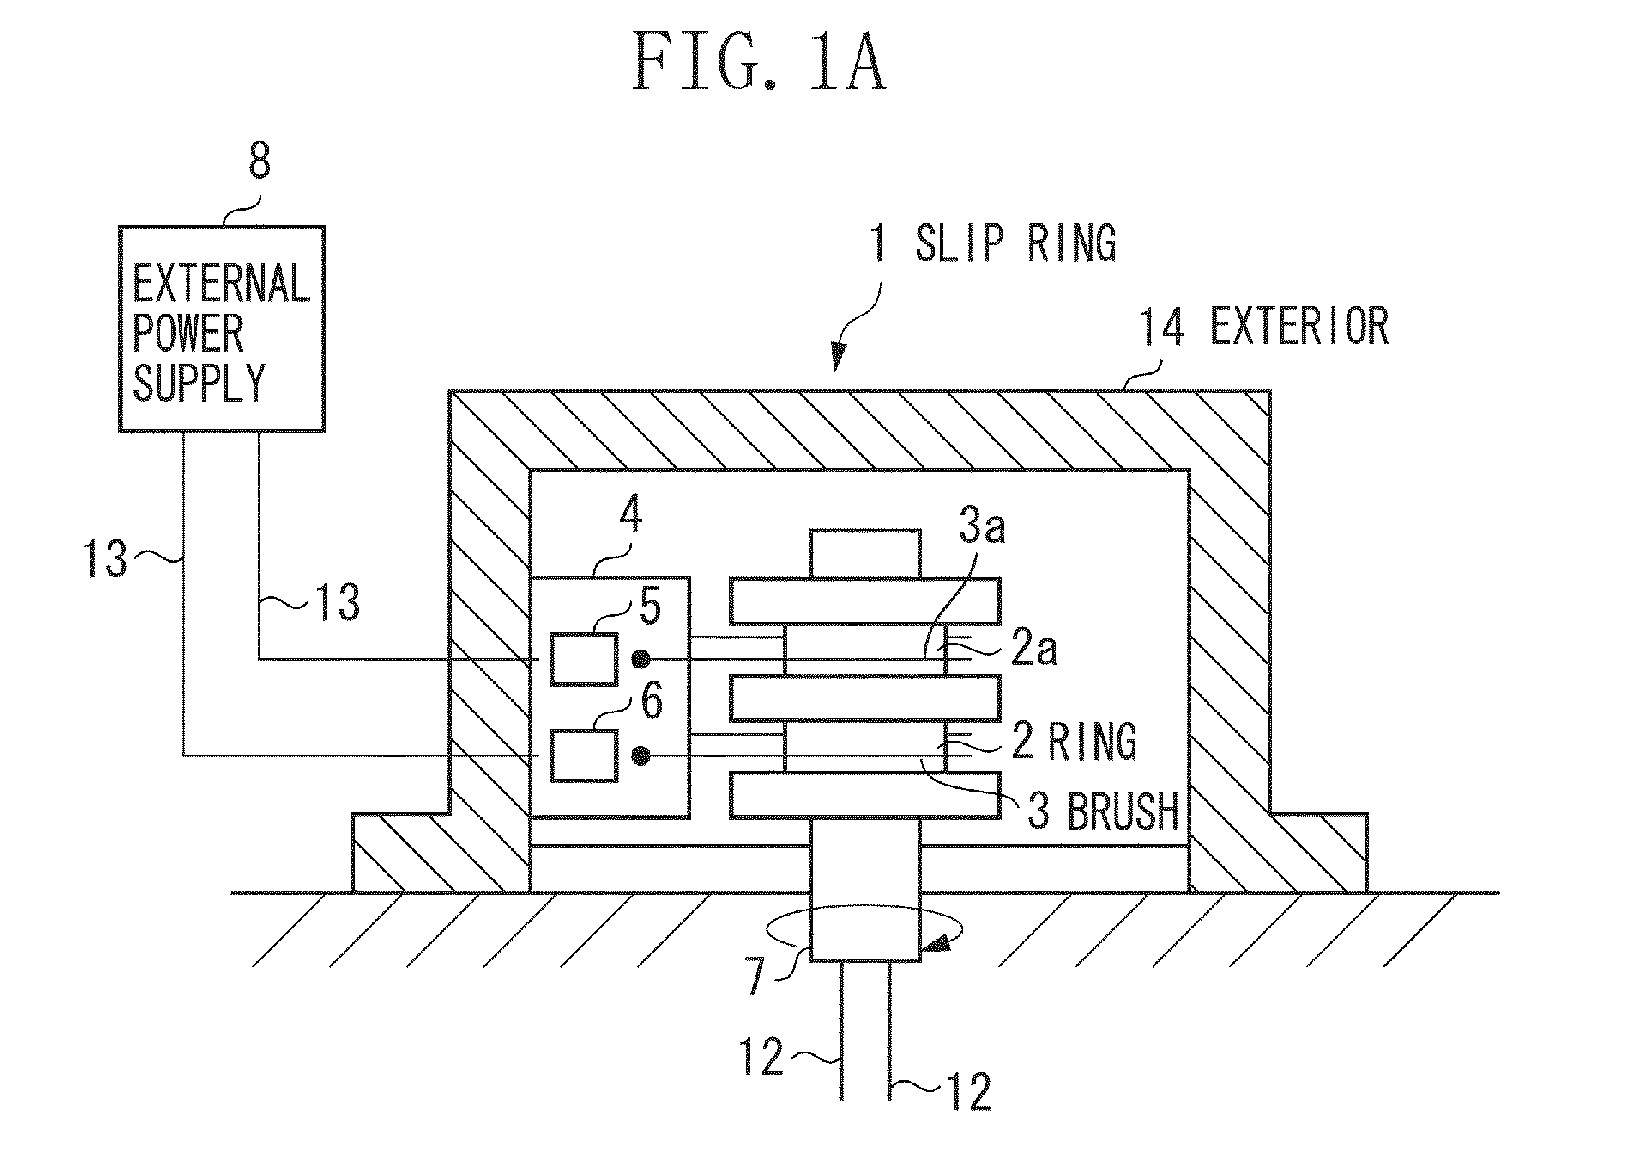 hight resolution of ep2704267a3 slip ring and slip ring electrical system google patents classifications slip ring motor starter wiring diagram